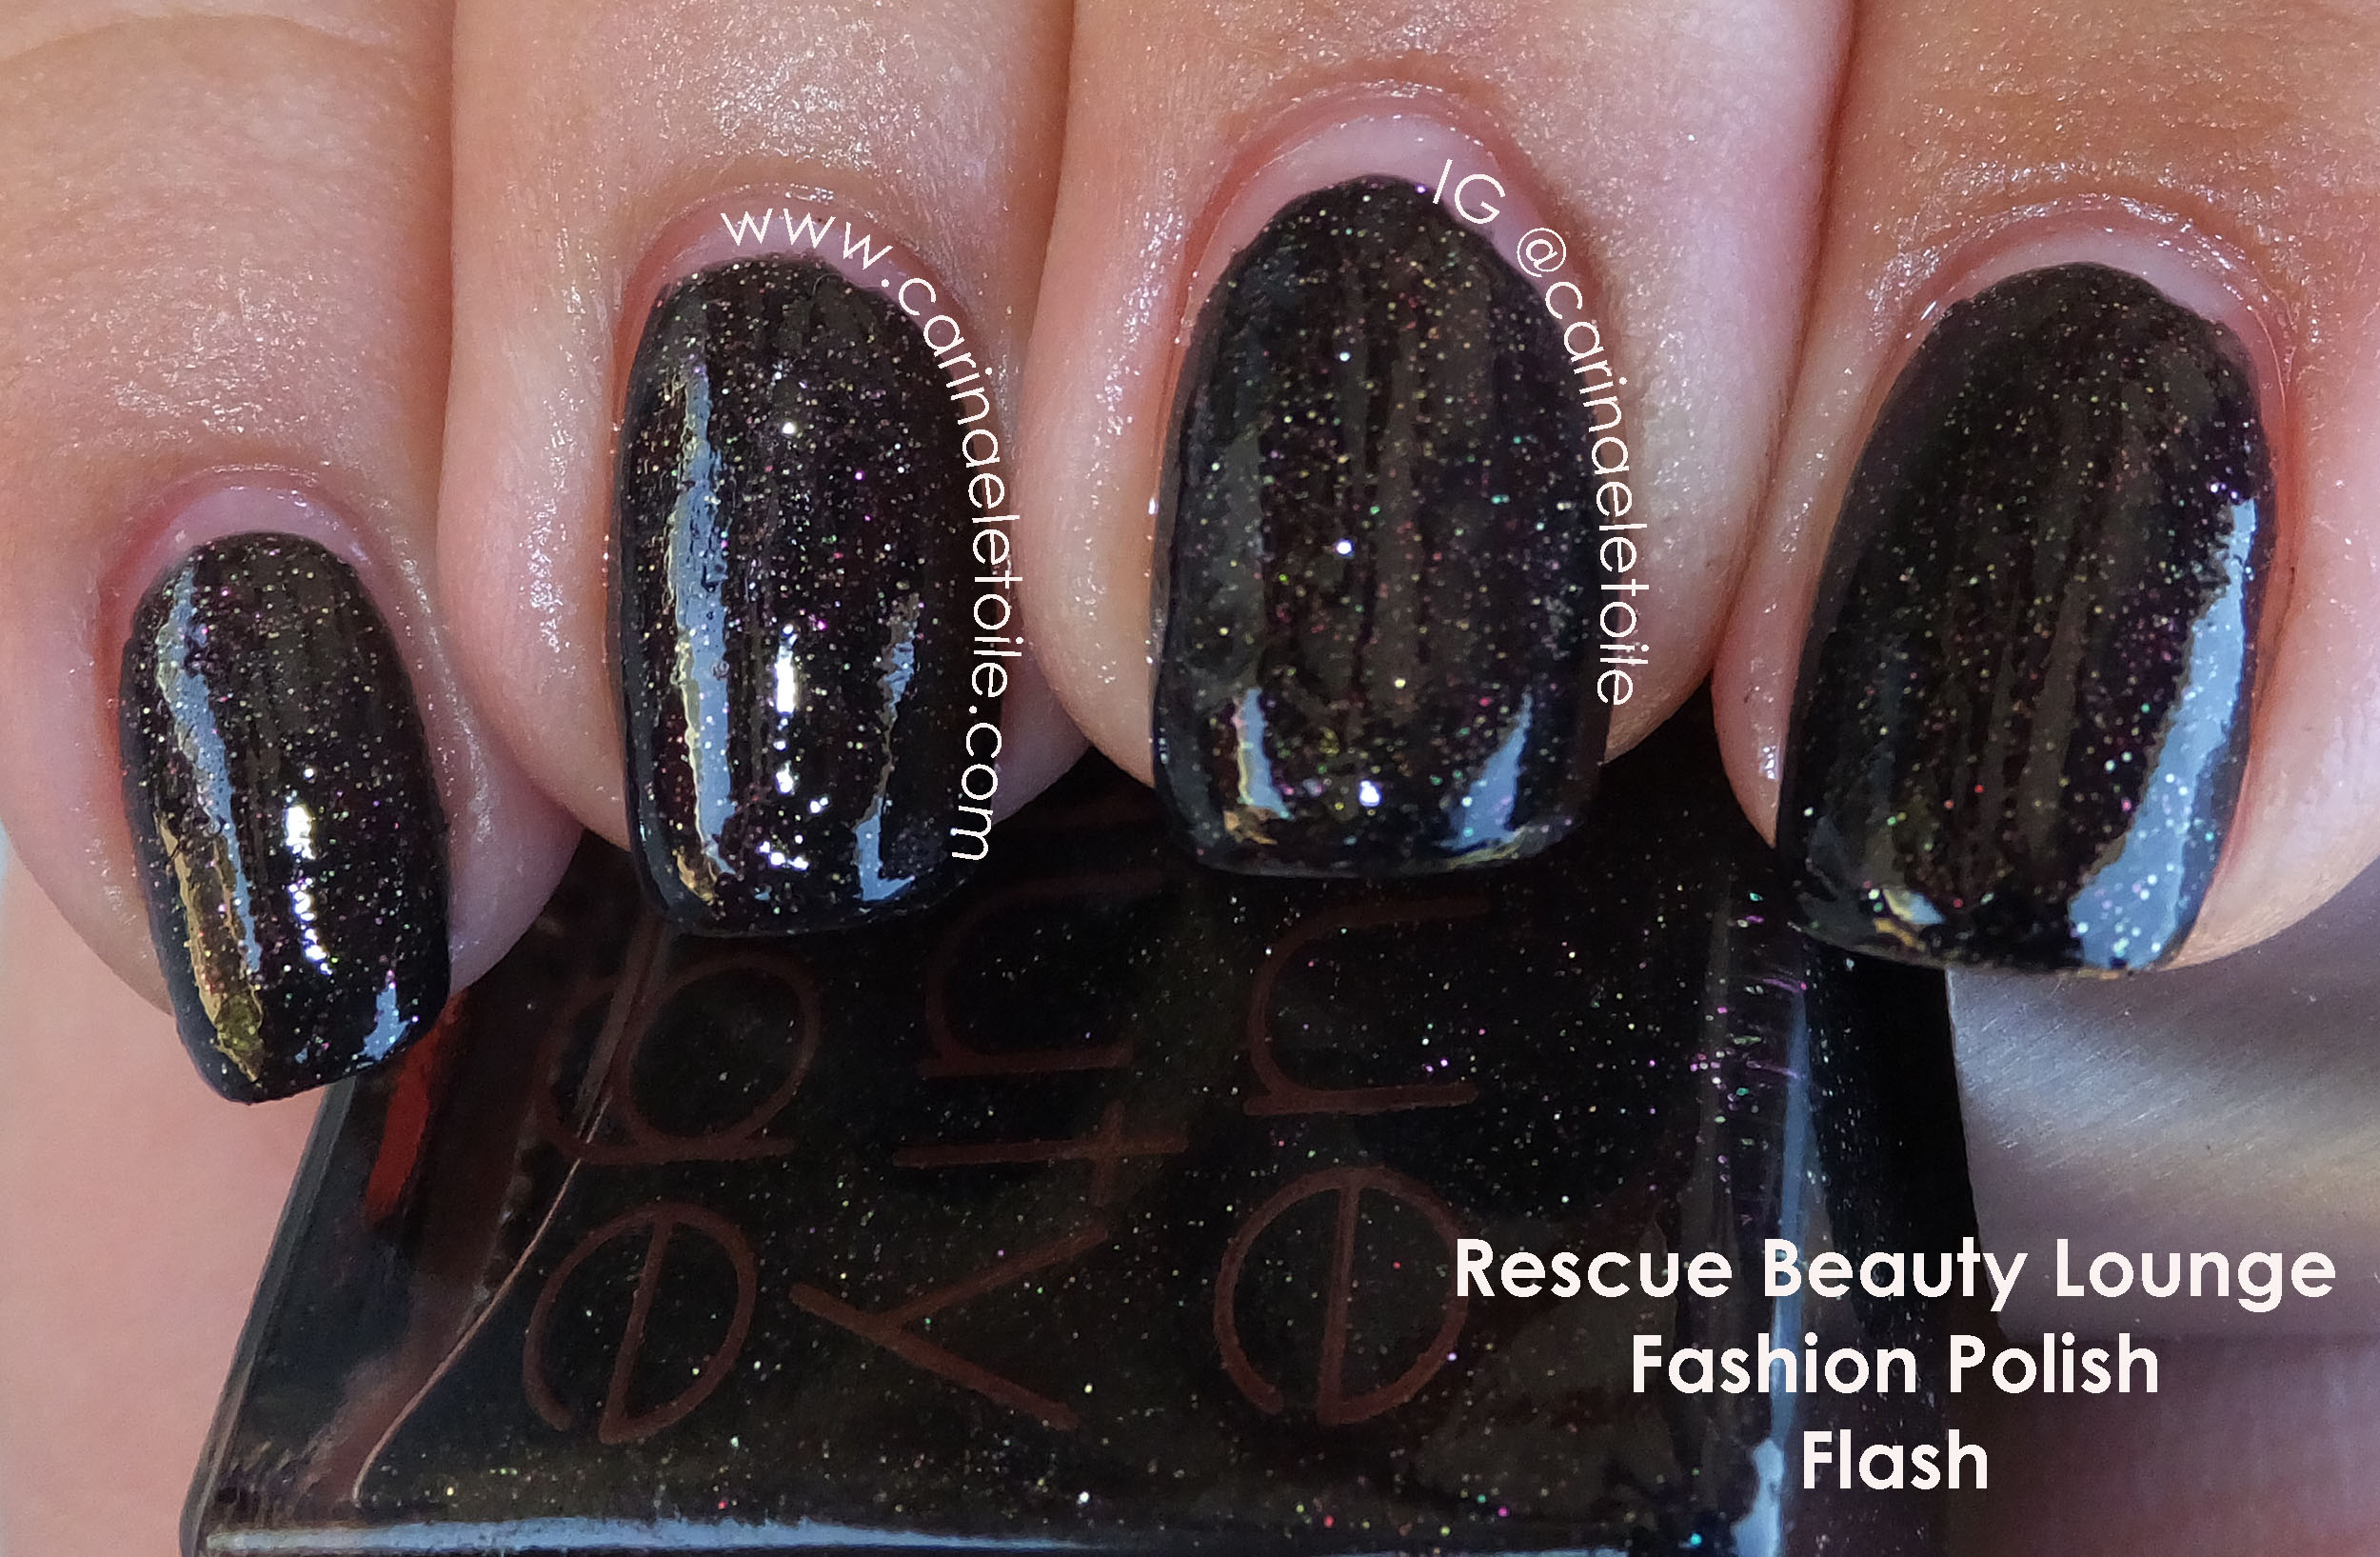 Rescue Beauty Lounge Blogger 2.0